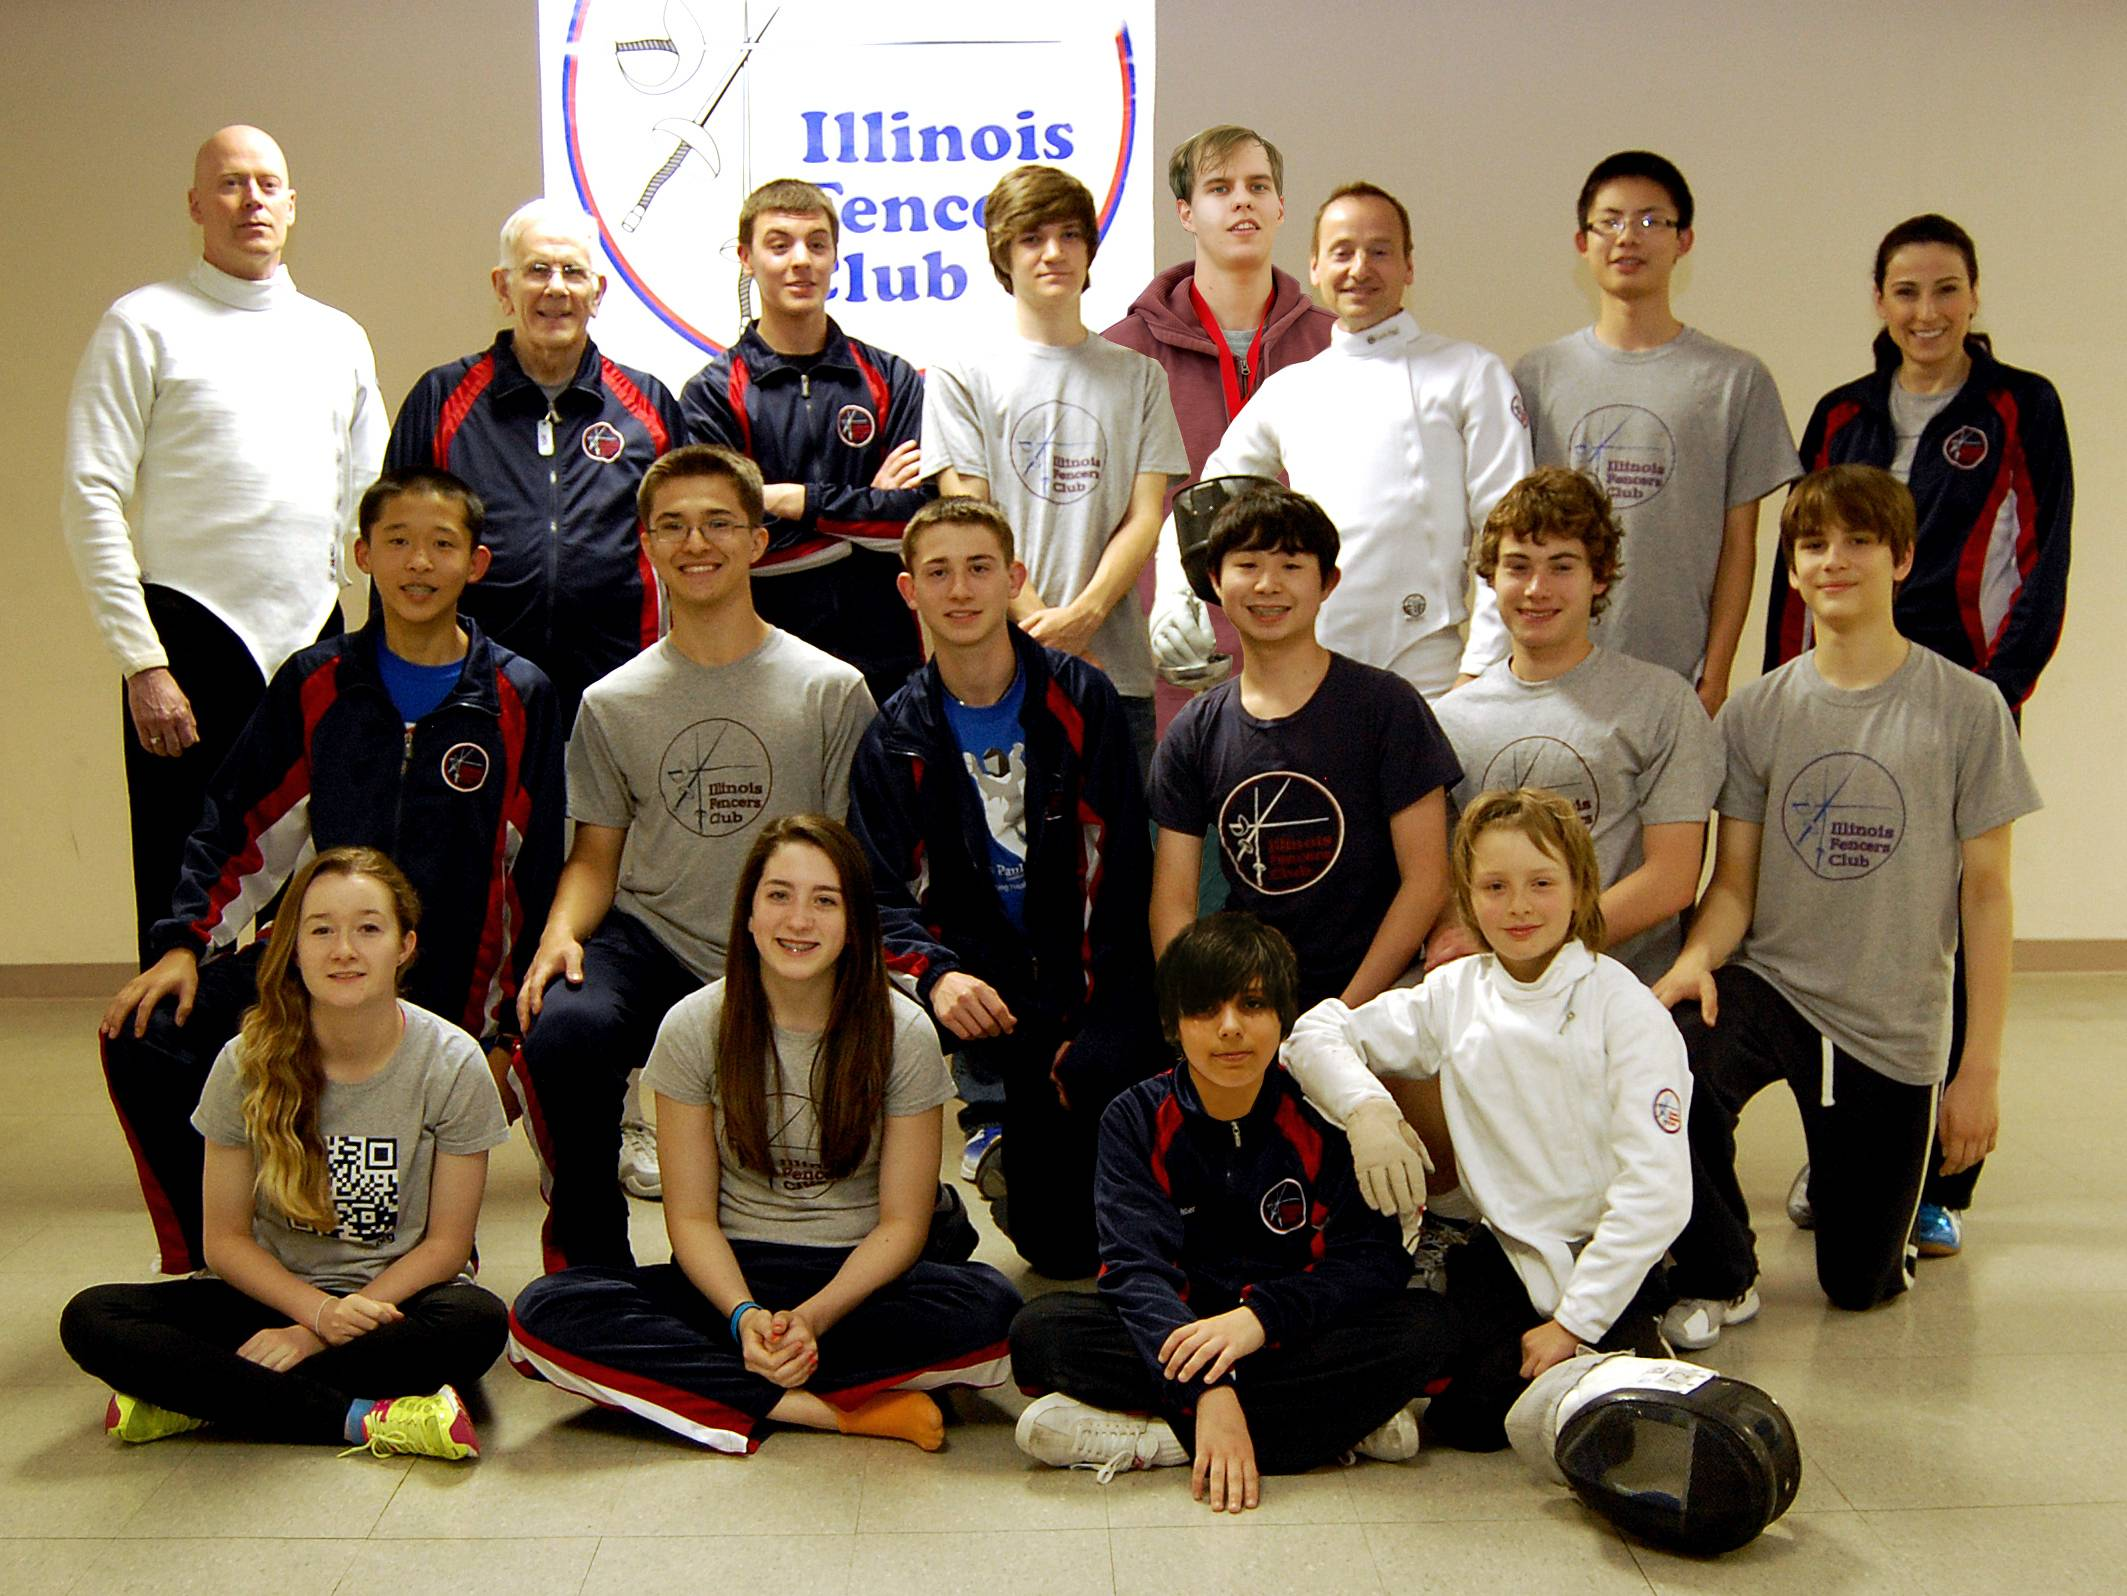 Illinois Fencers Club Summer Nationals Team with coach Ina Harizanova (top right)